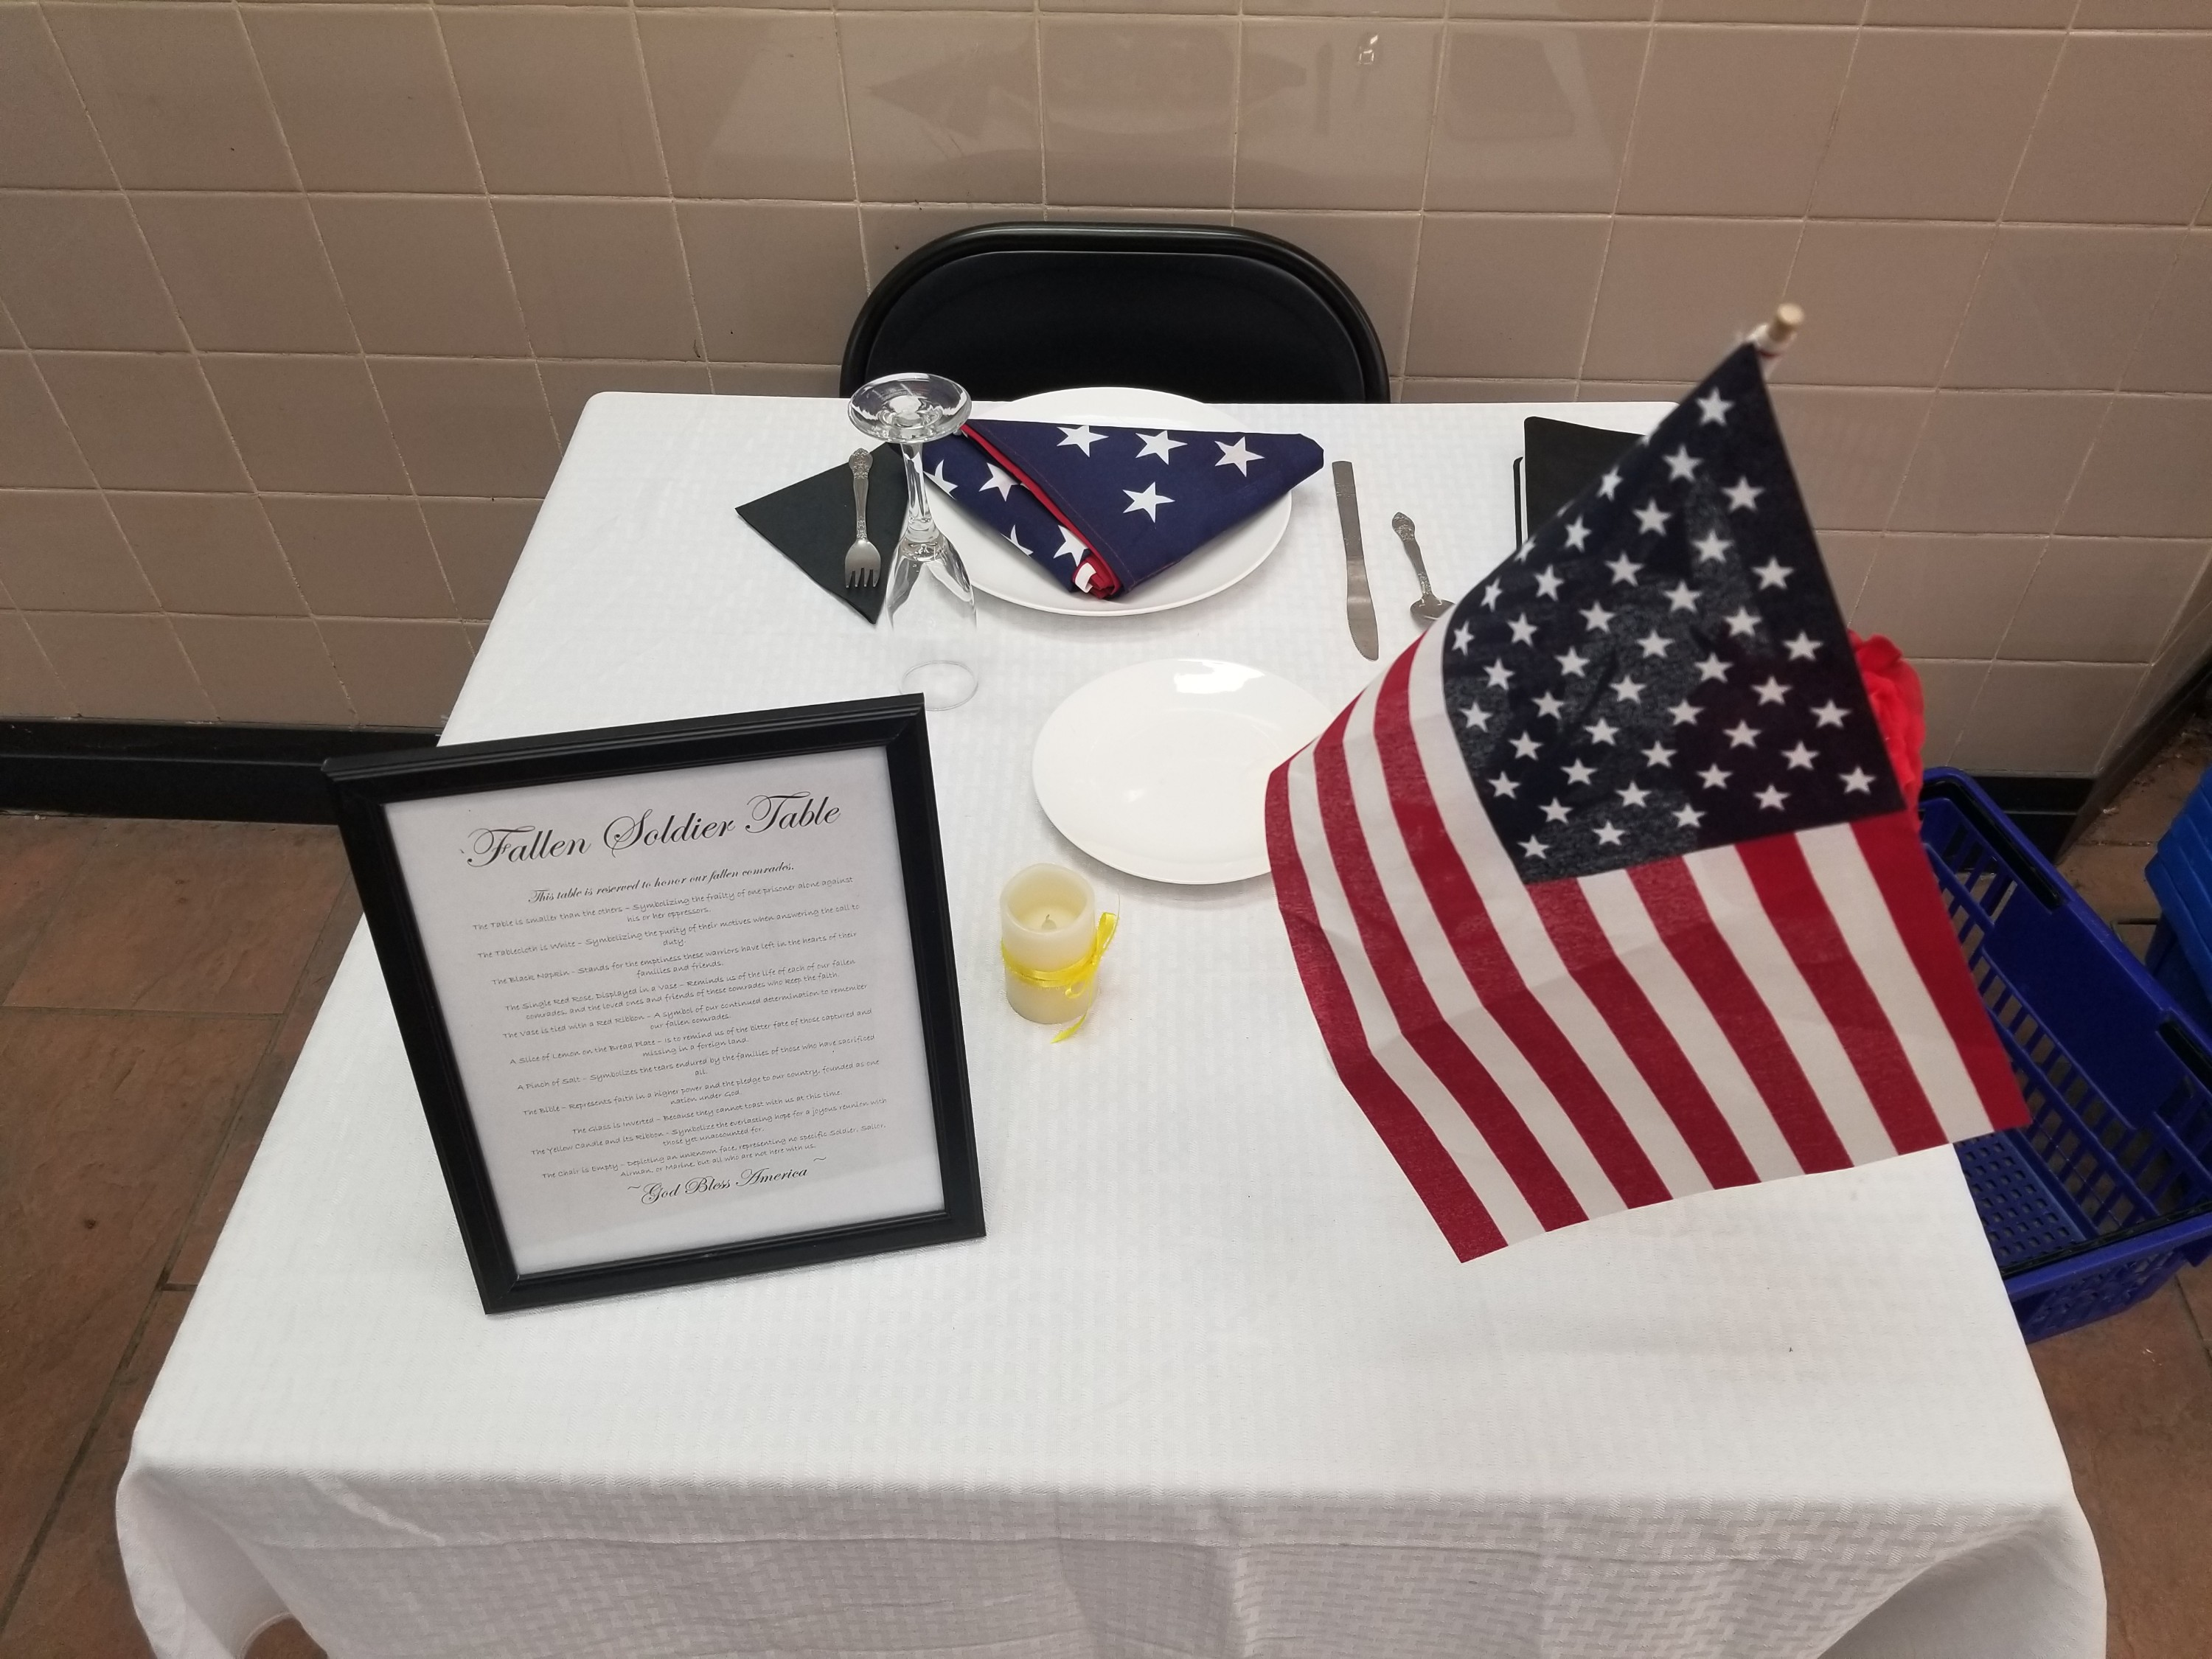 Fallen Soldiers Table